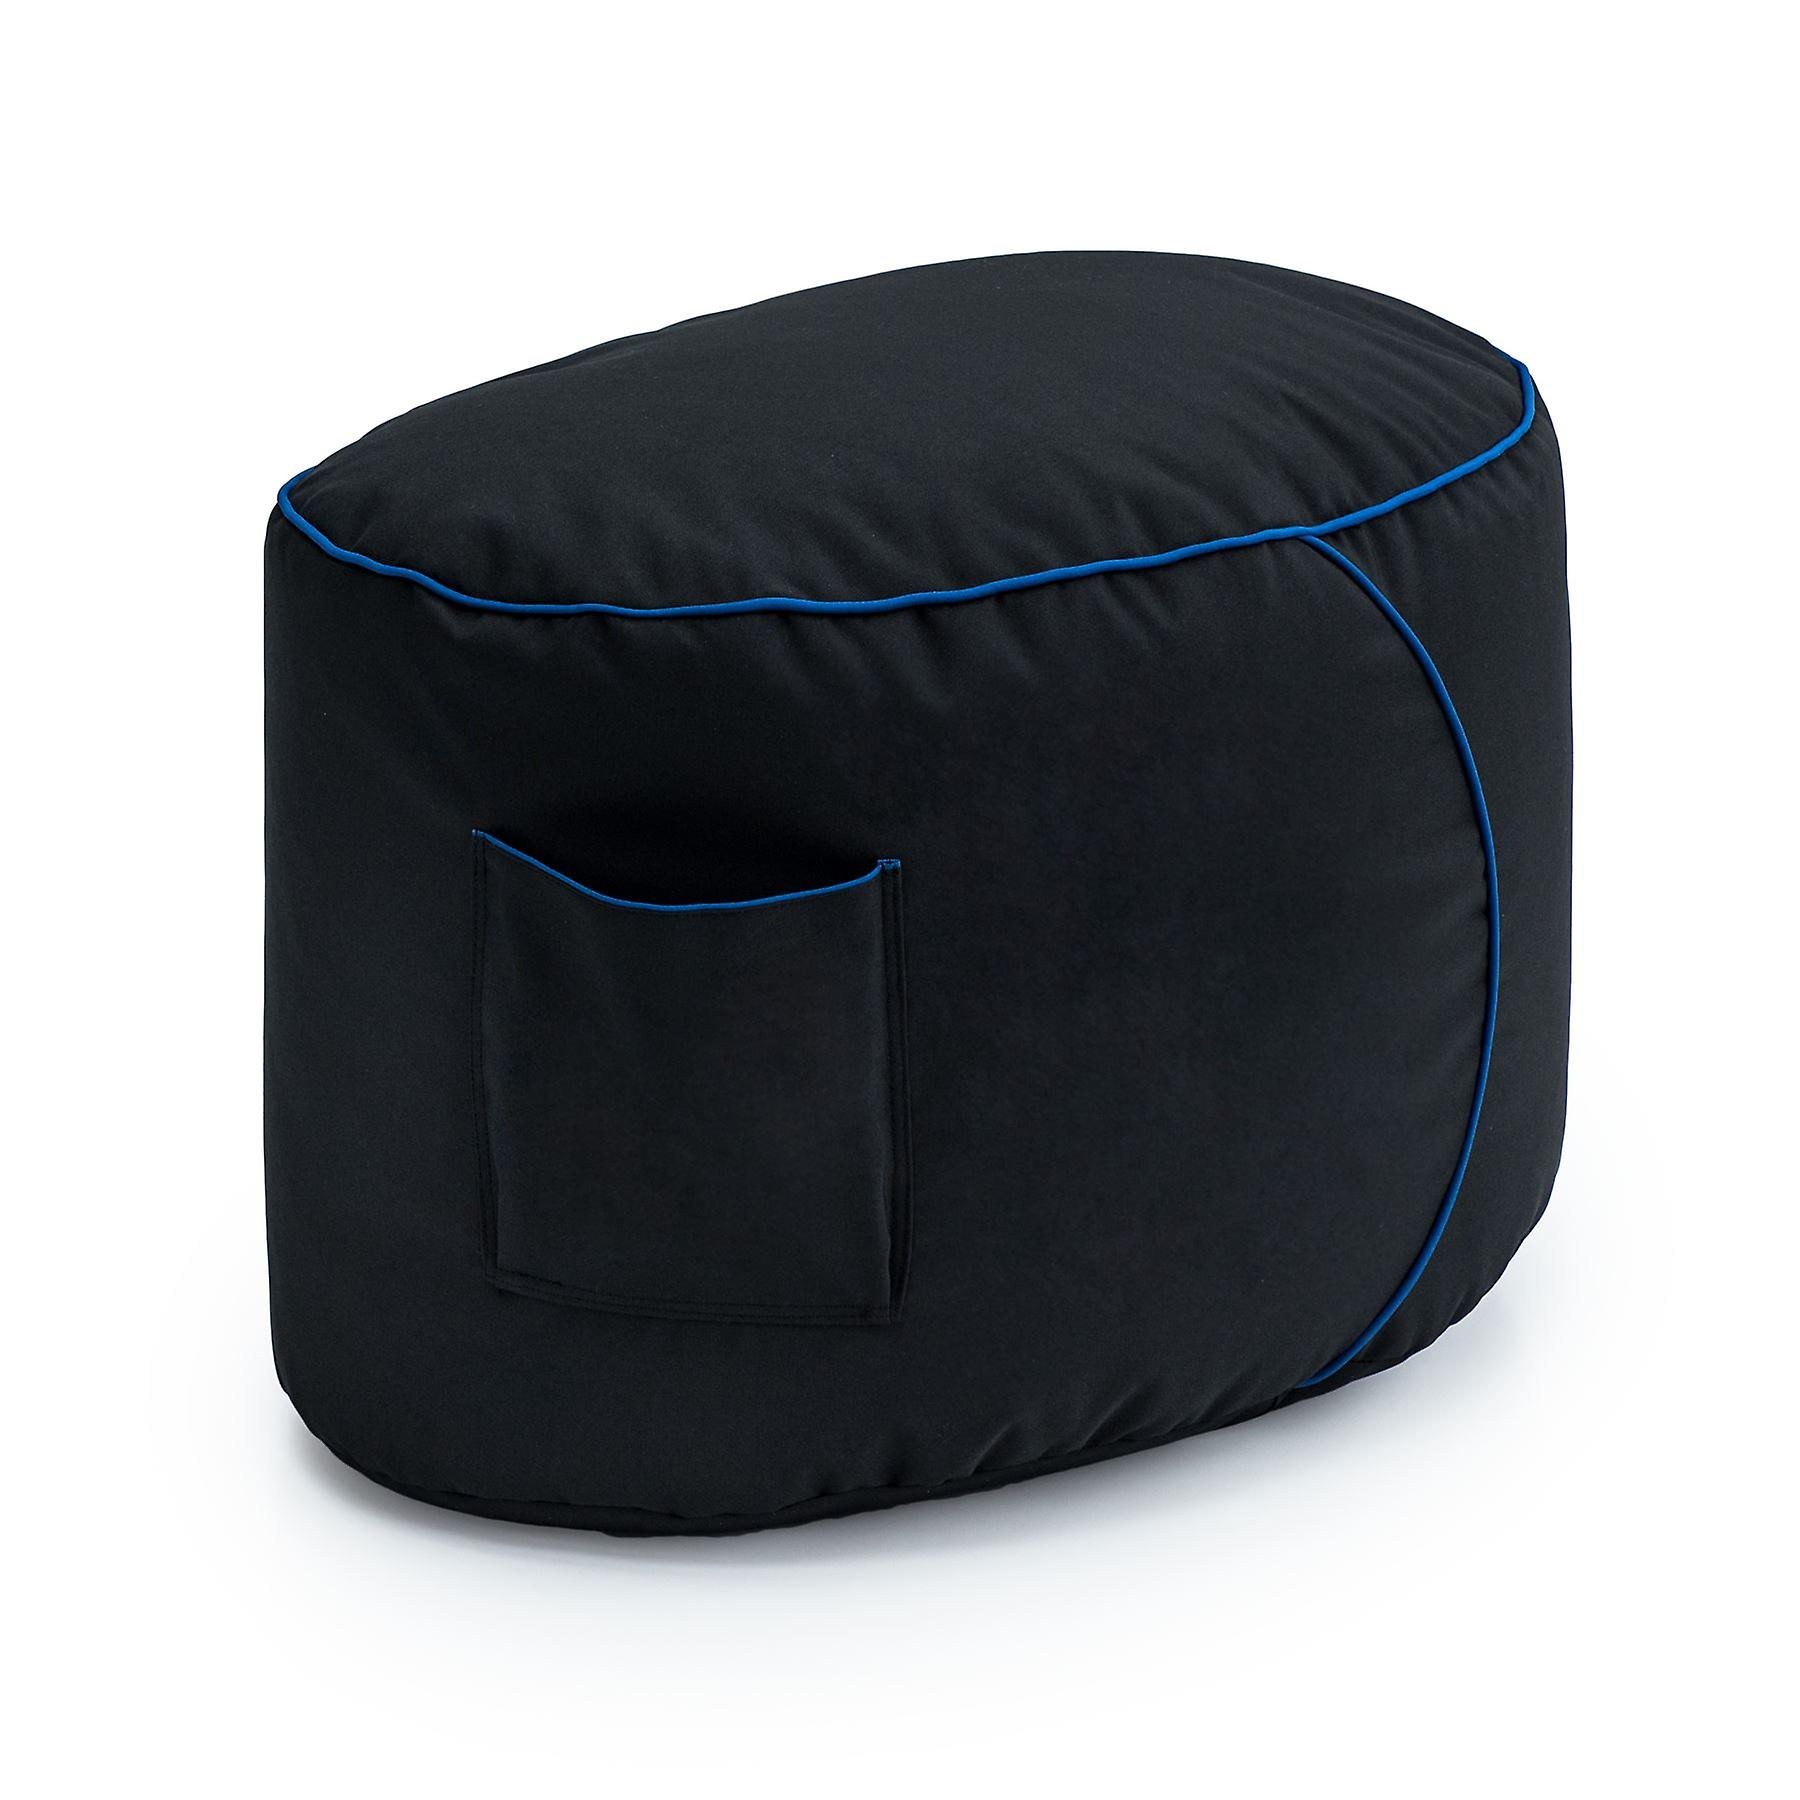 Cerulean Game LightningblueBean Over Gaming Pouffe Footstool Bag rCsdQth